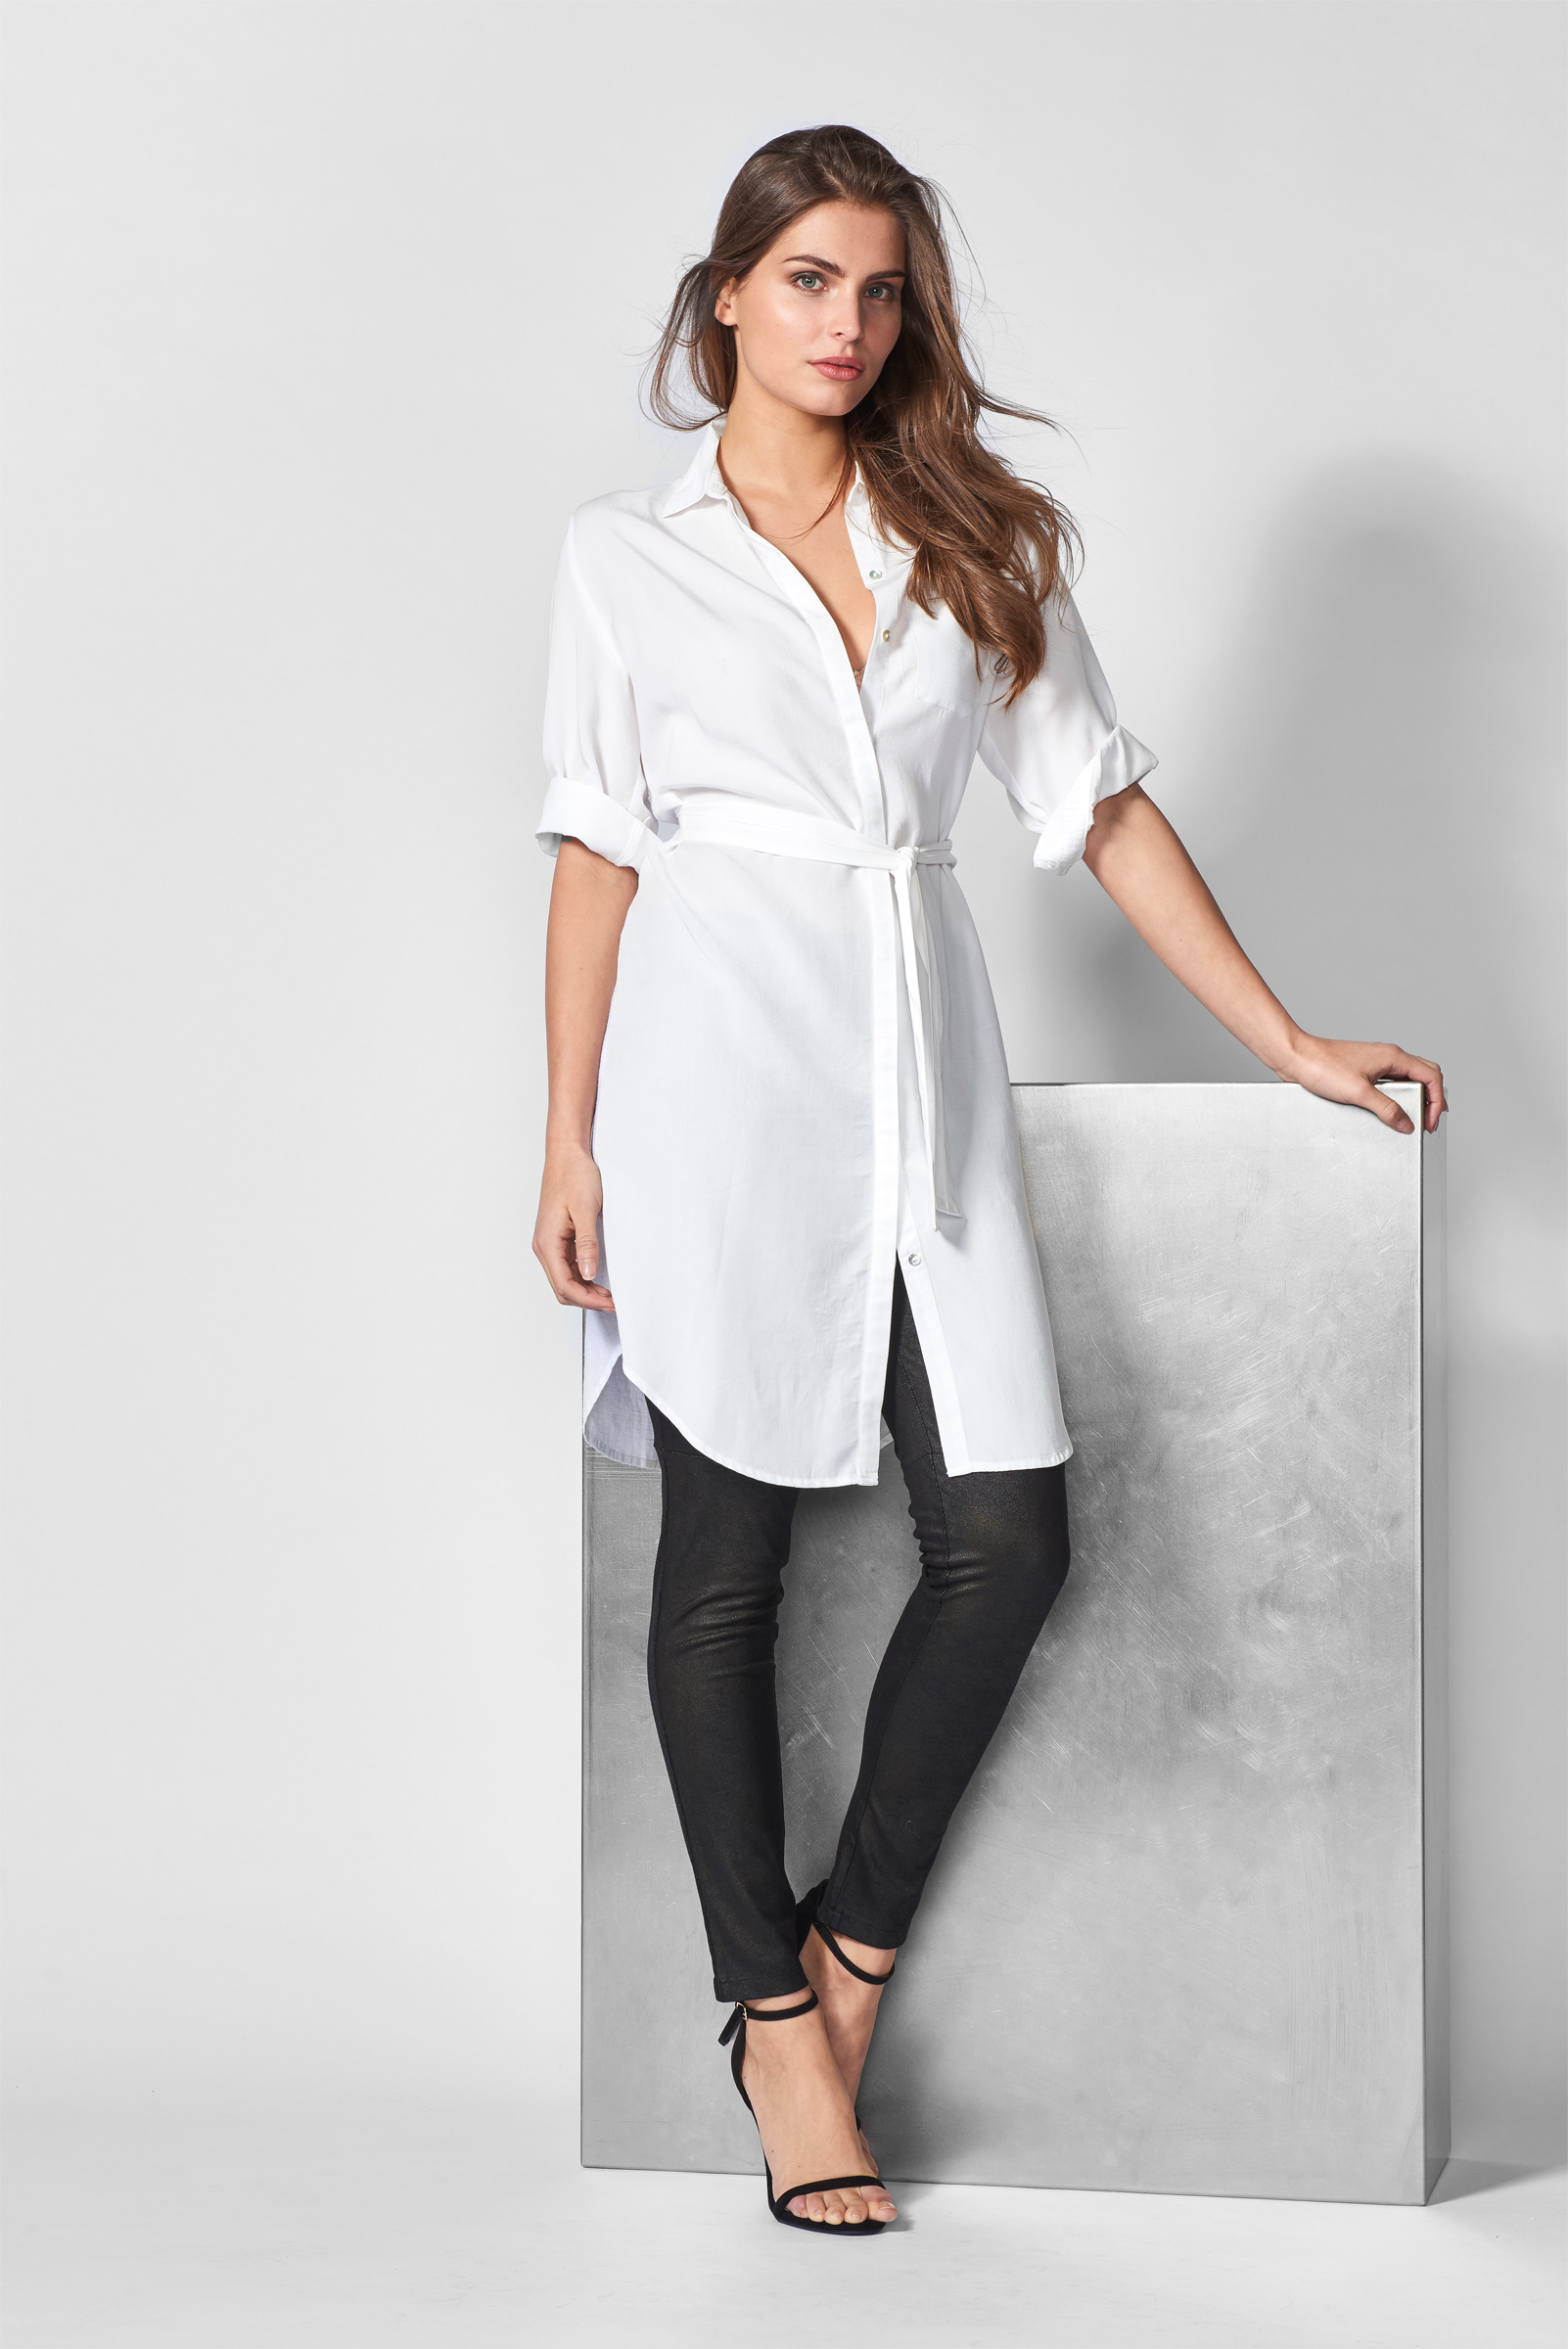 Mart Visser  hailey blouse jurk off white